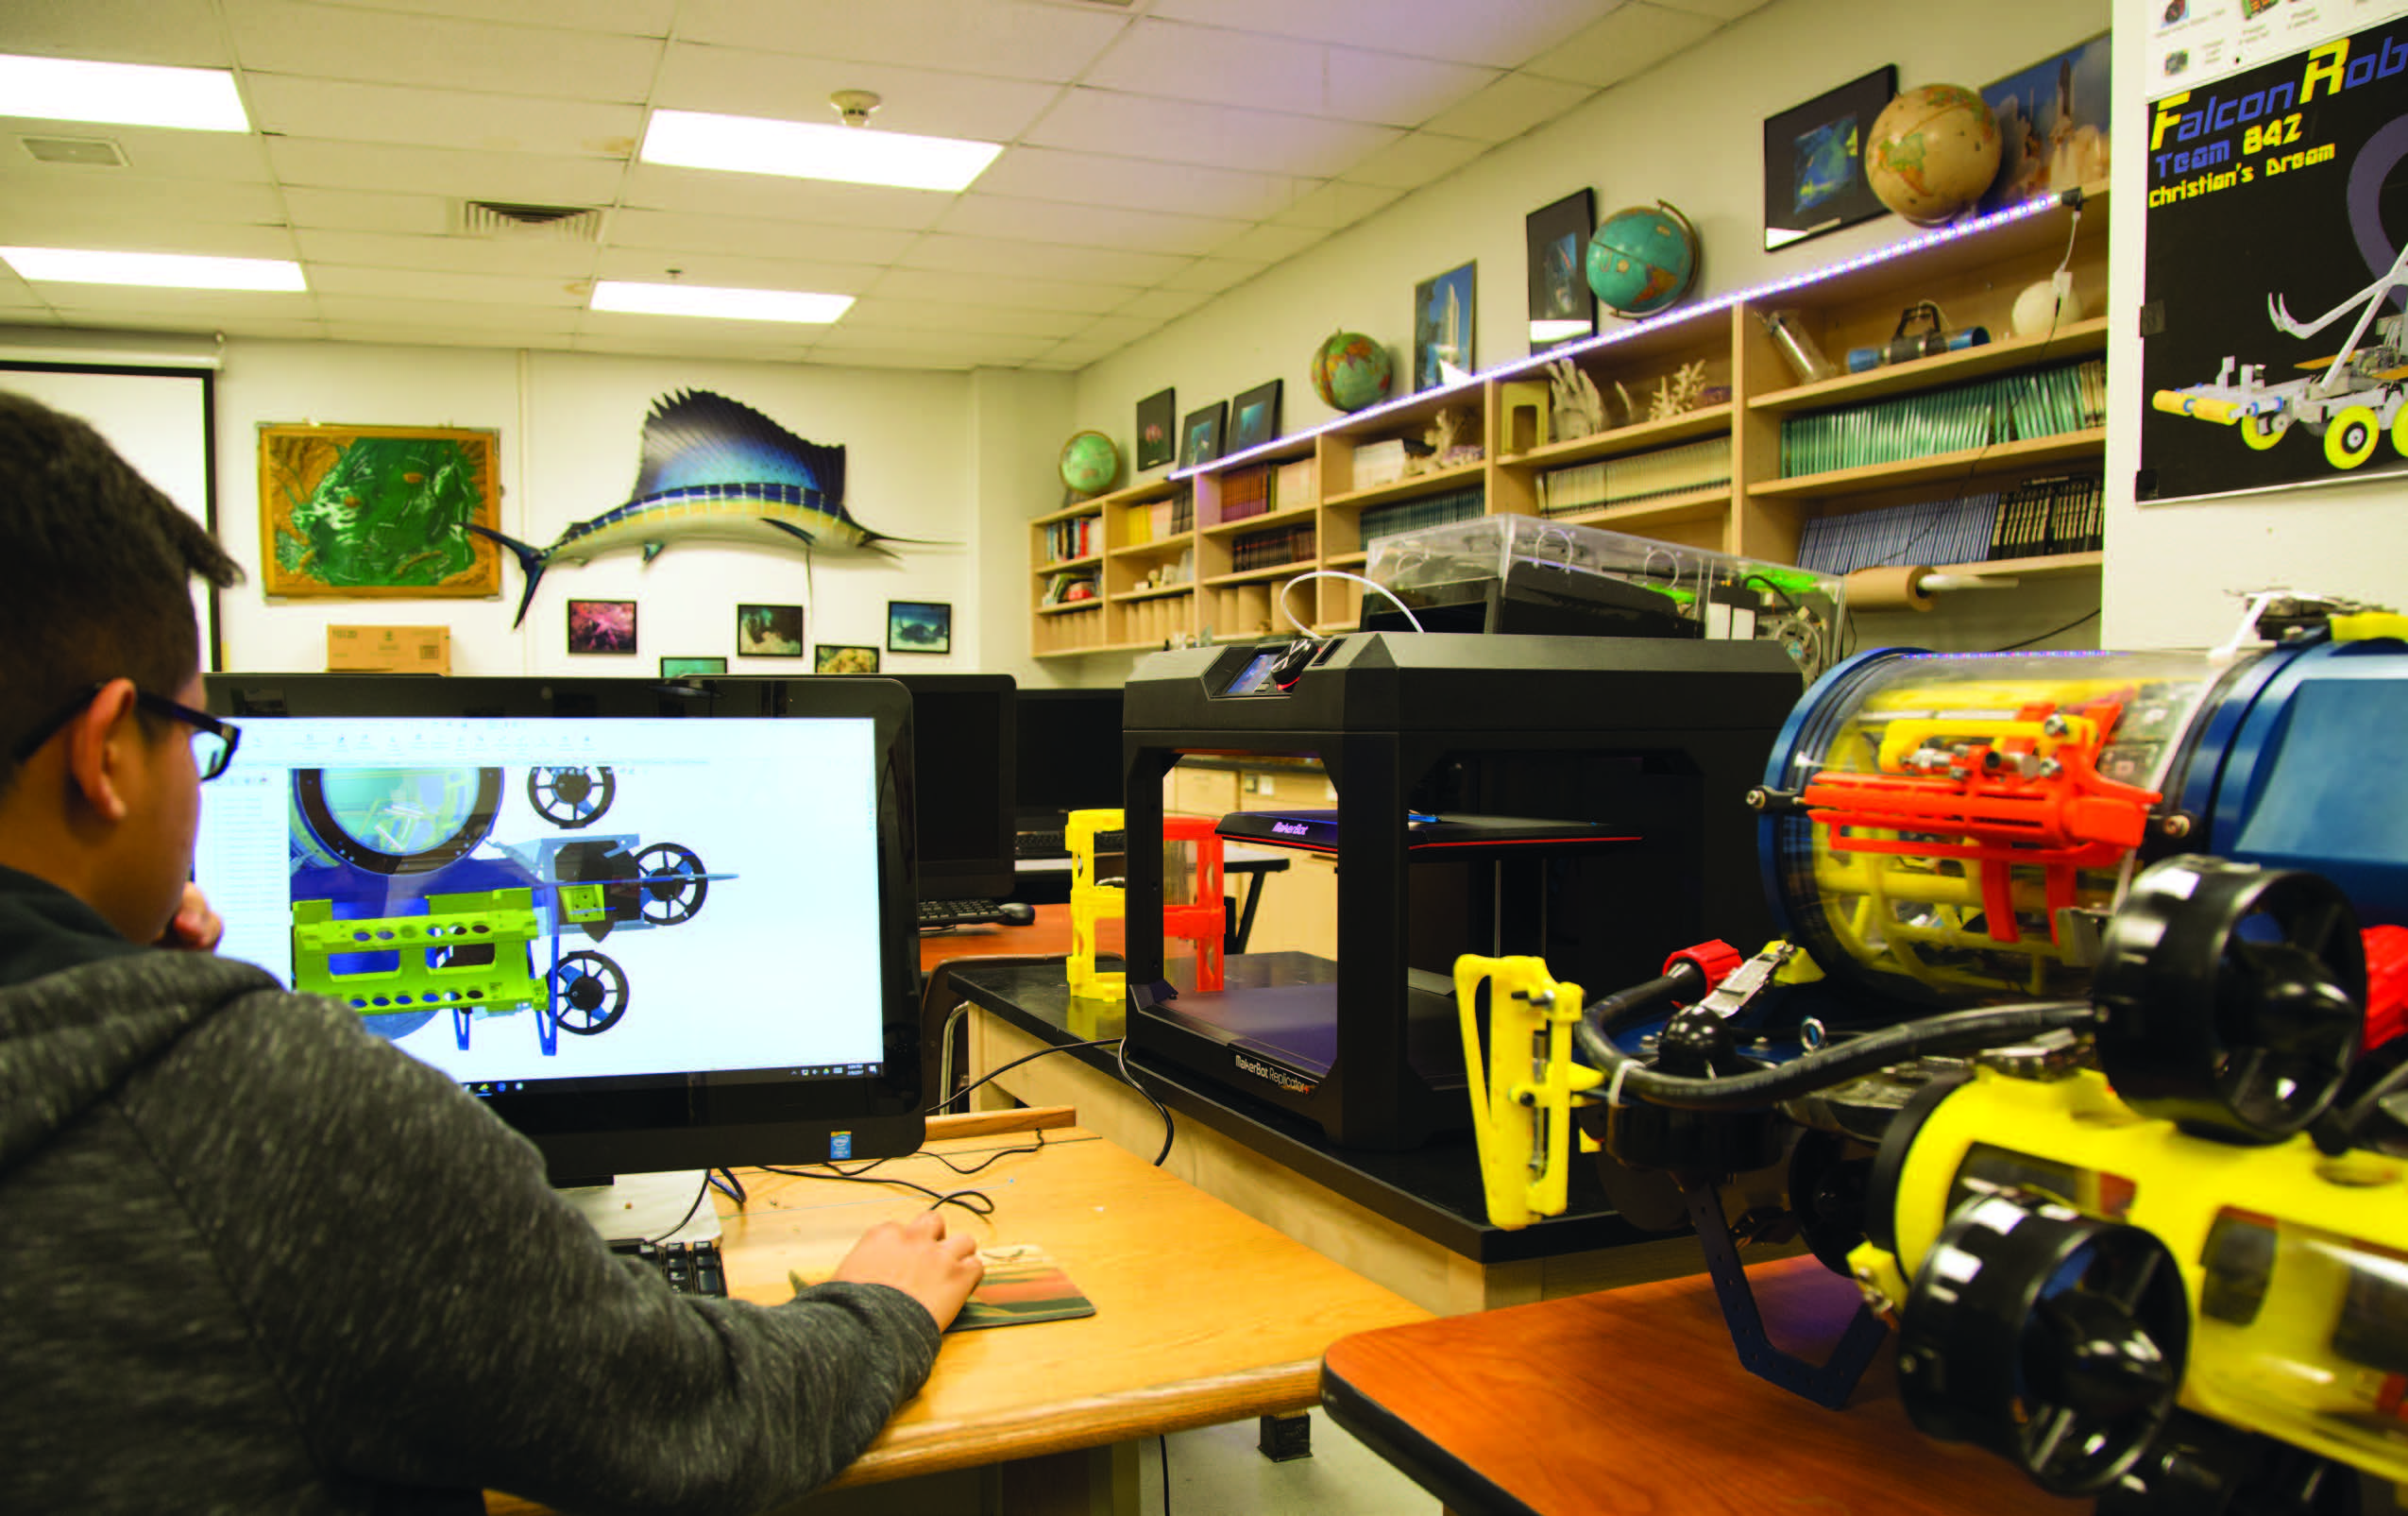 Building Robot Subs And Reinventing Stem Learning With Makerbot